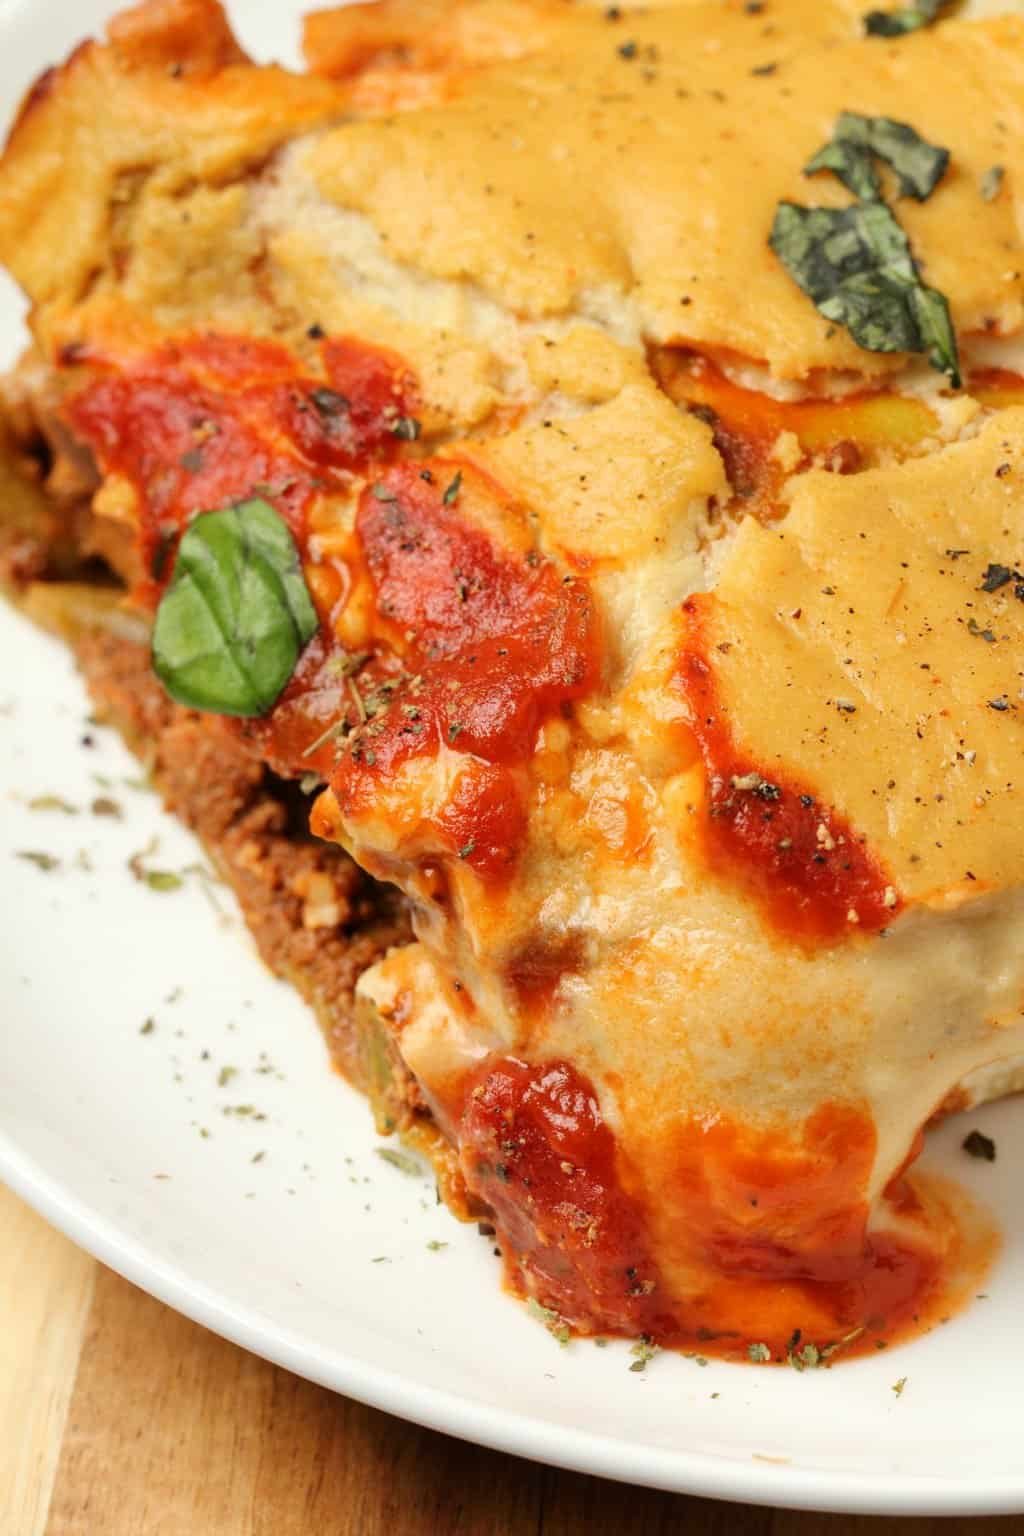 Slice of vegan lasagna on a white plate.